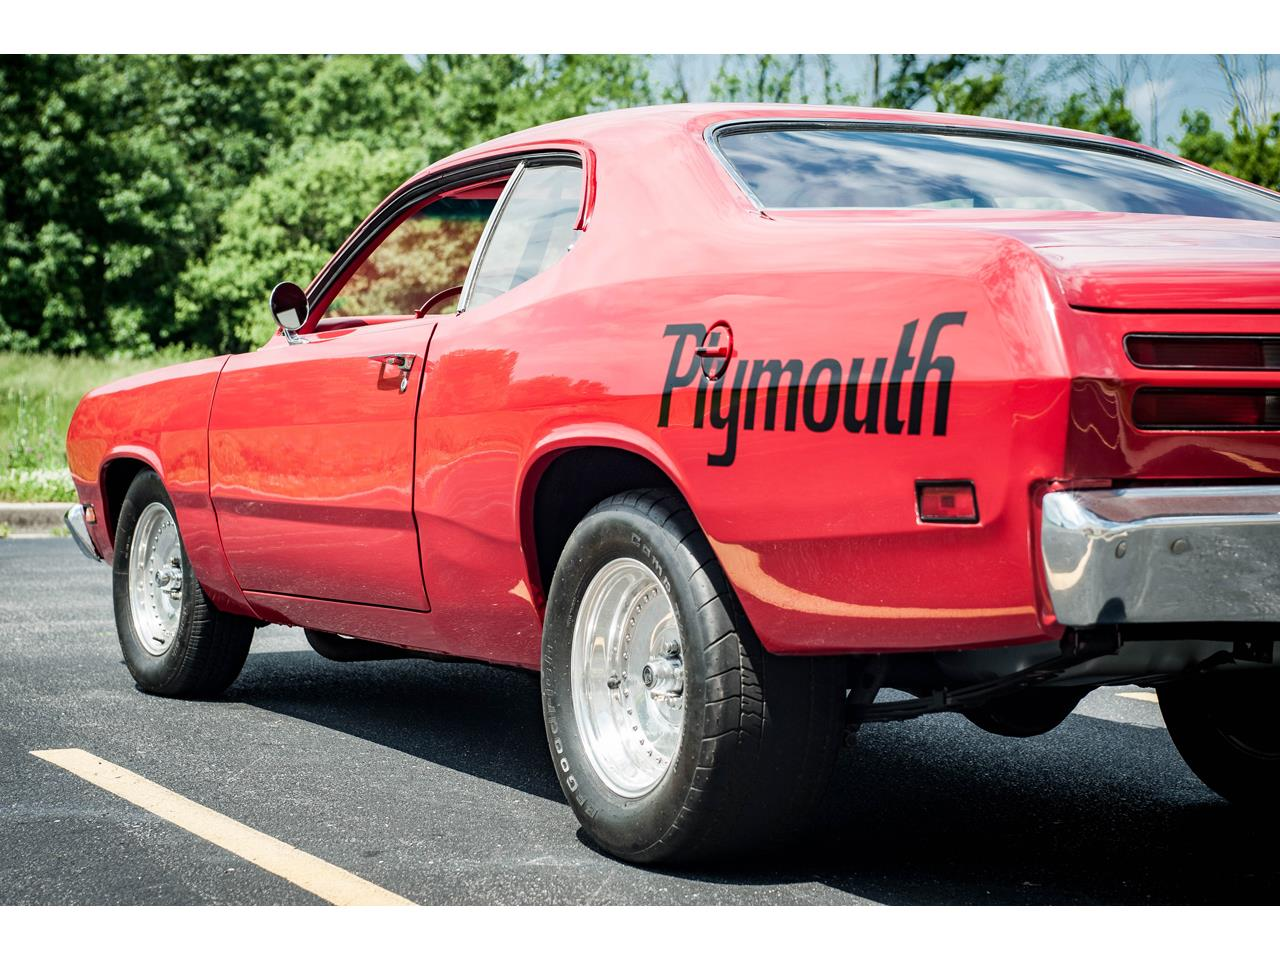 Large Picture of '71 Plymouth Duster located in O'Fallon Illinois - $30,000.00 - QB9U